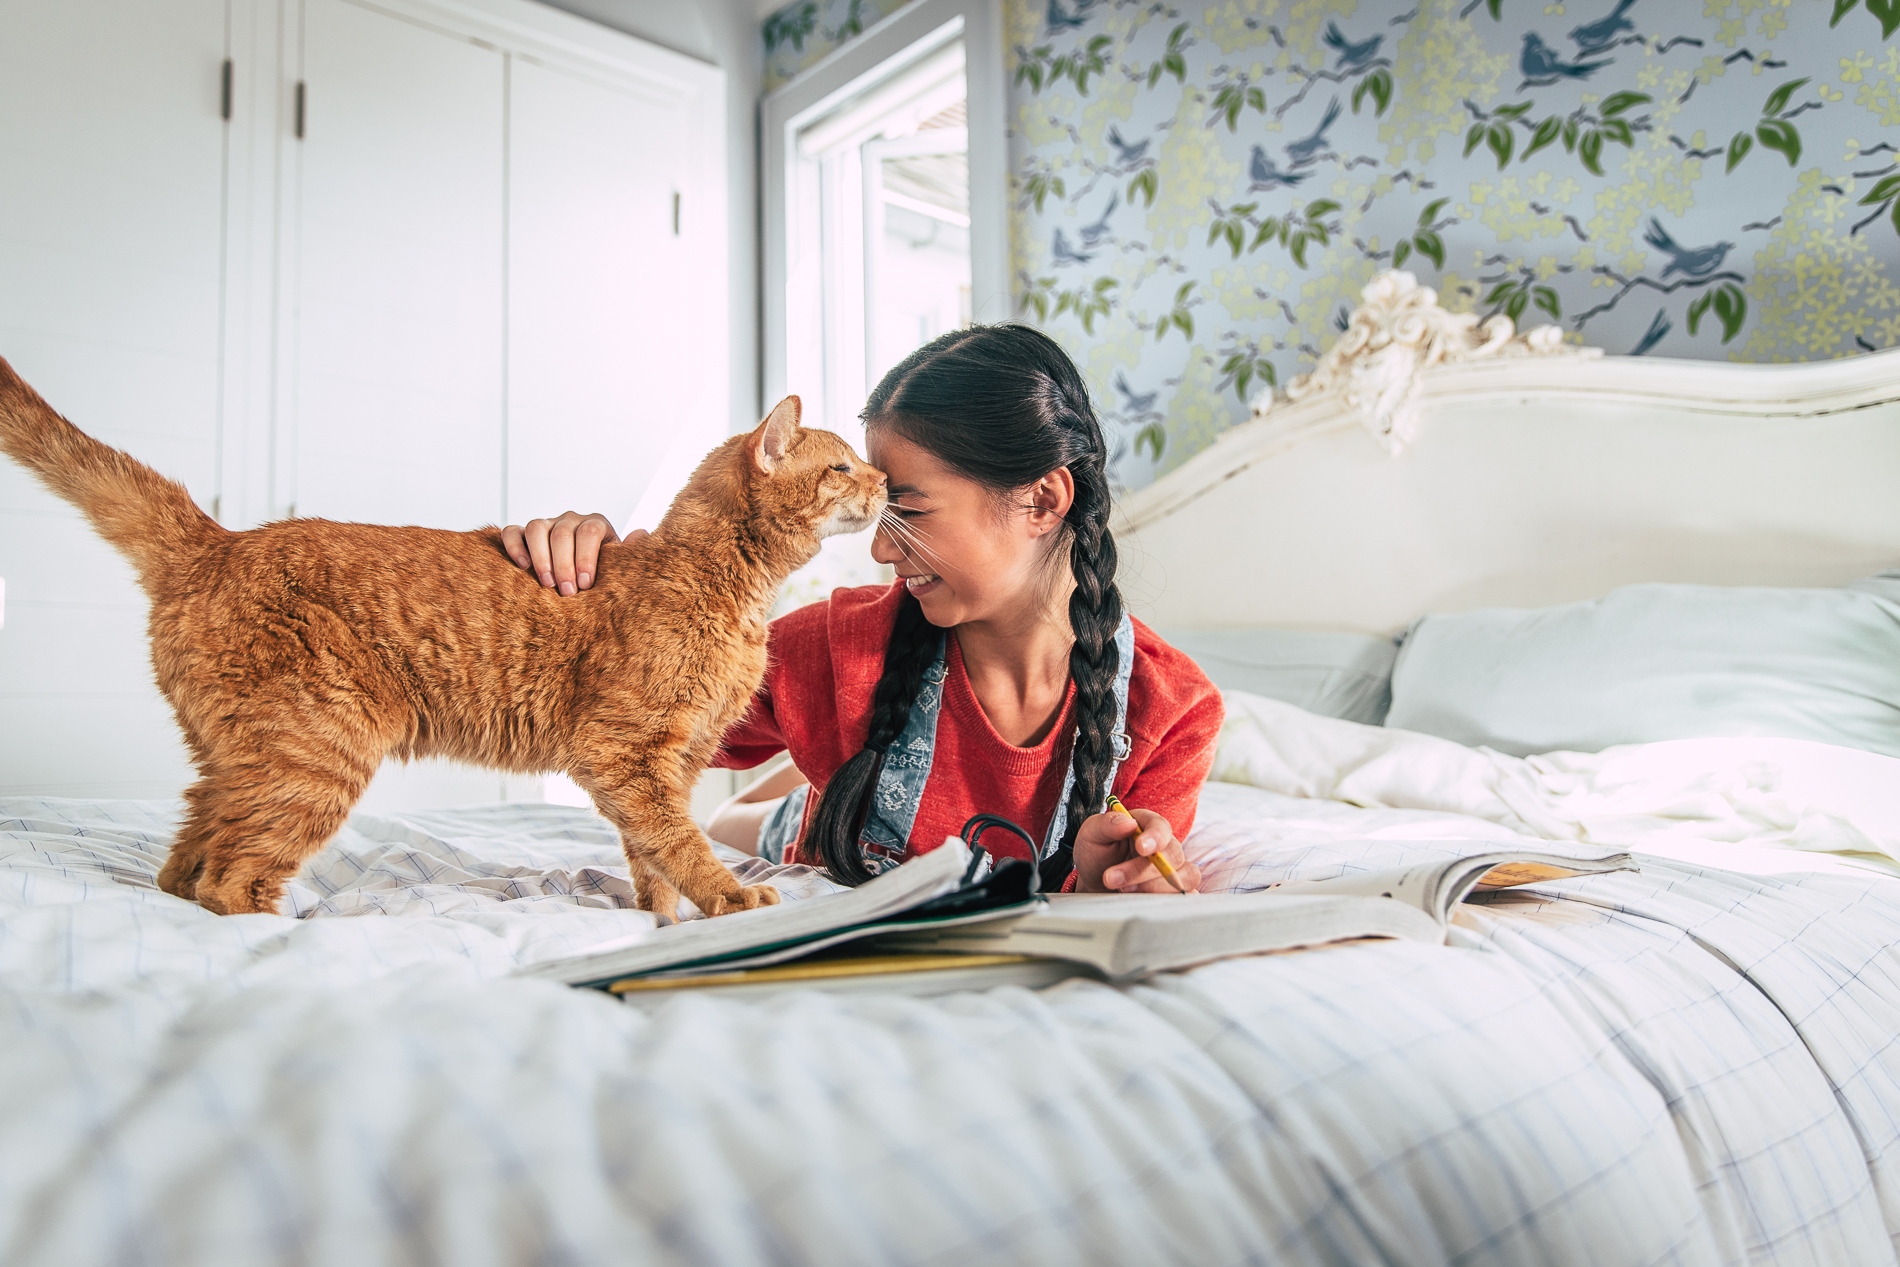 Young Girl Working on Homework with a Cat